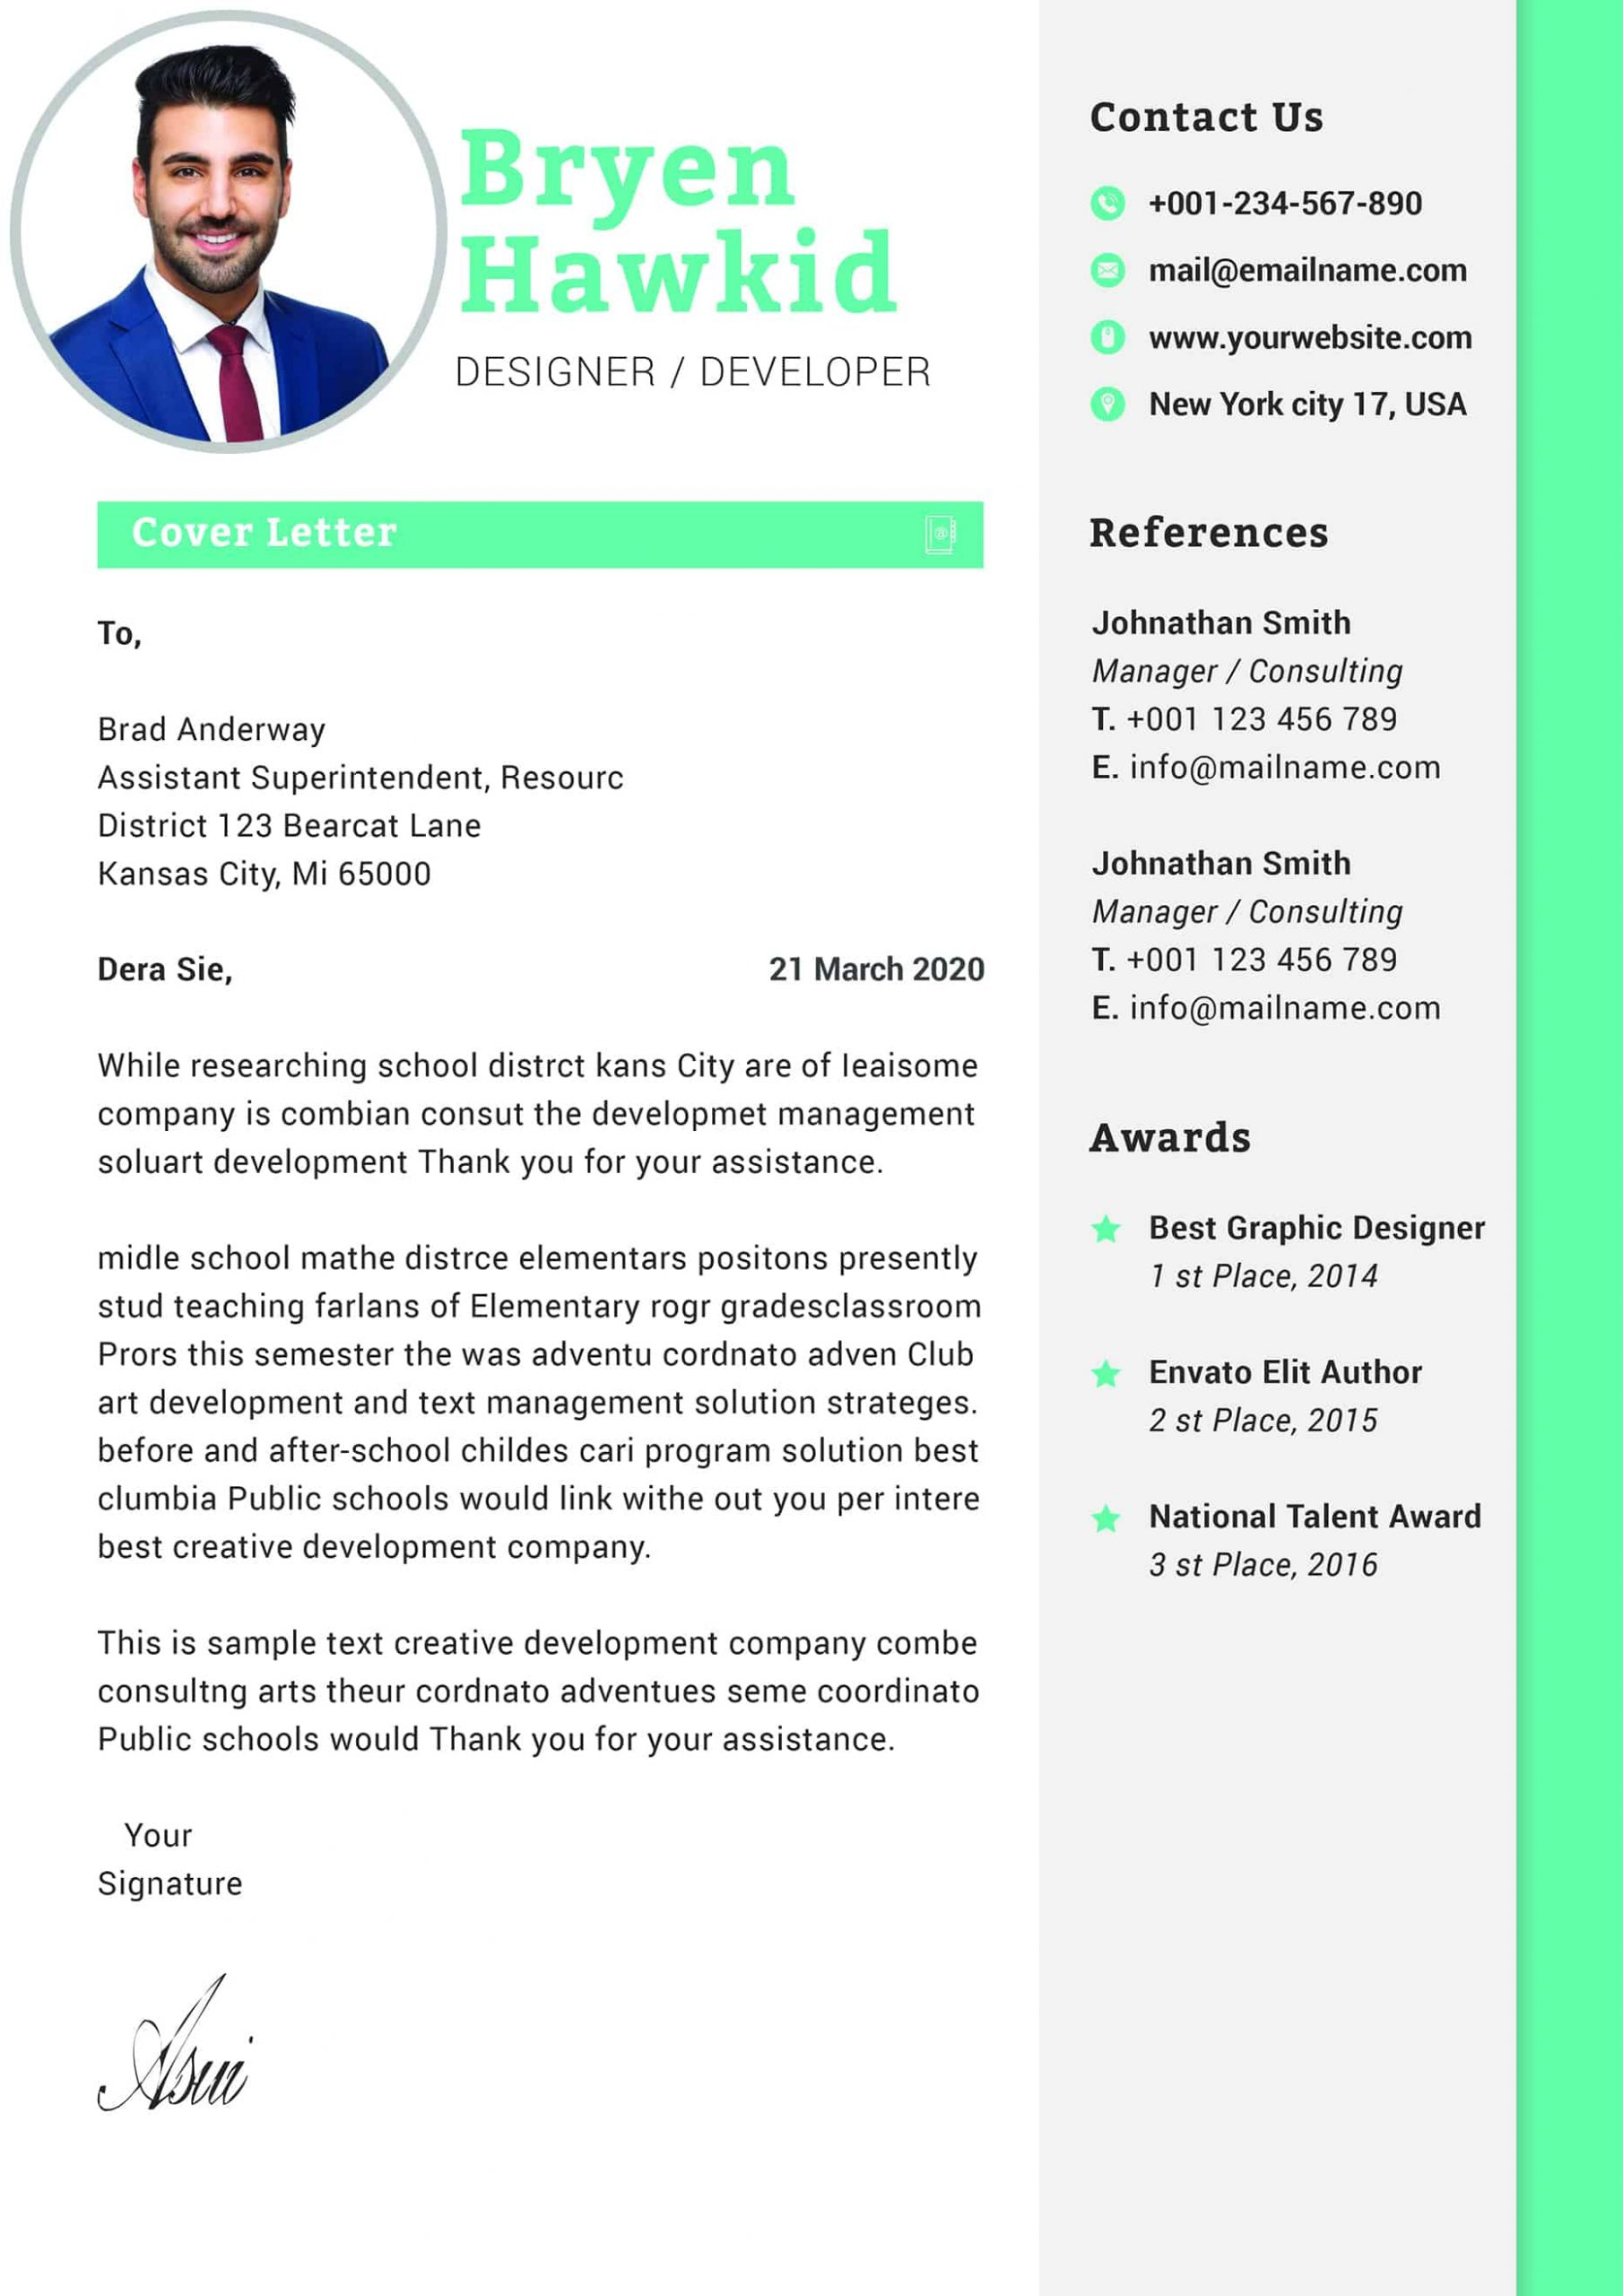 senior graphic designer cover letter format word for resume scaled targeted example email Resume Cover Letter For Resume Graphic Designer